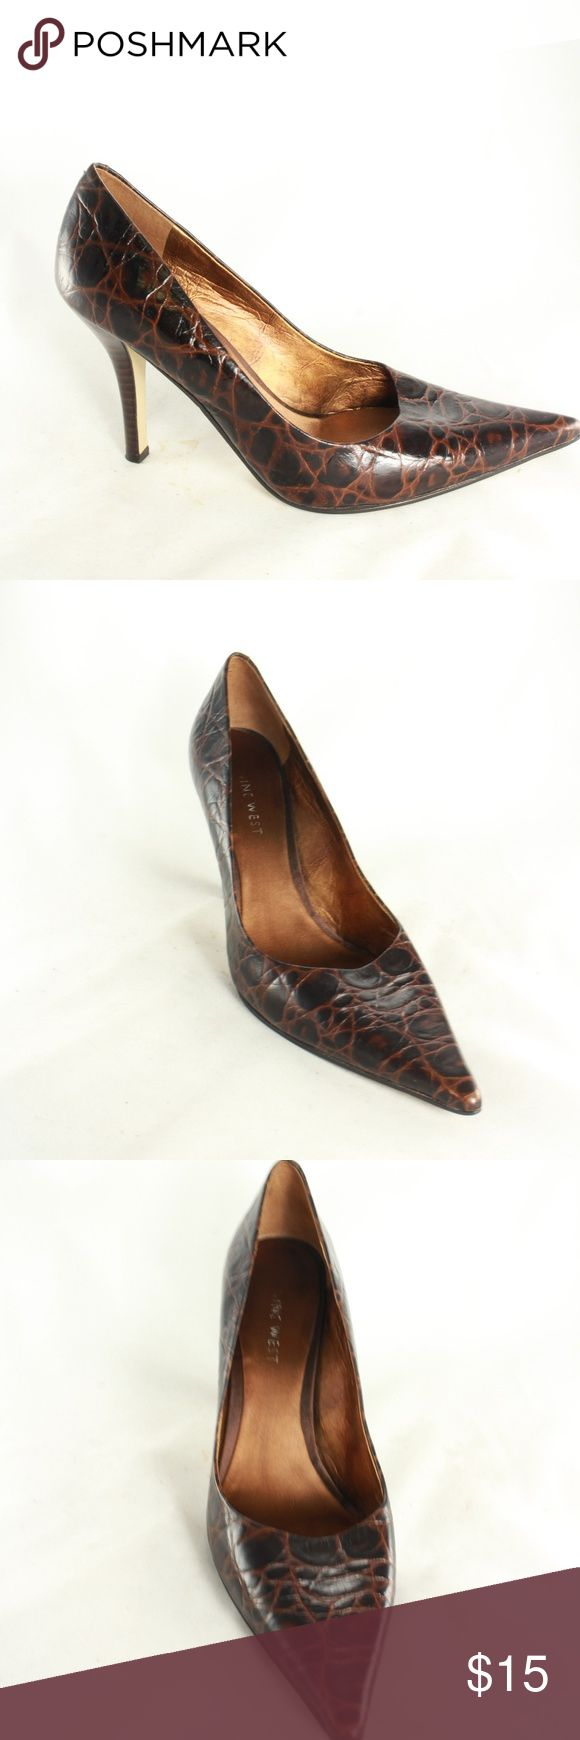 NINE WEST Black Brown NW Freda Pump Heels Clean and stylish contrasting notes of leather on the upper. Copper finish insole. Wear these with pants, skirts, jeans, and so much more!  Size 7 Nine West Shoes Heels